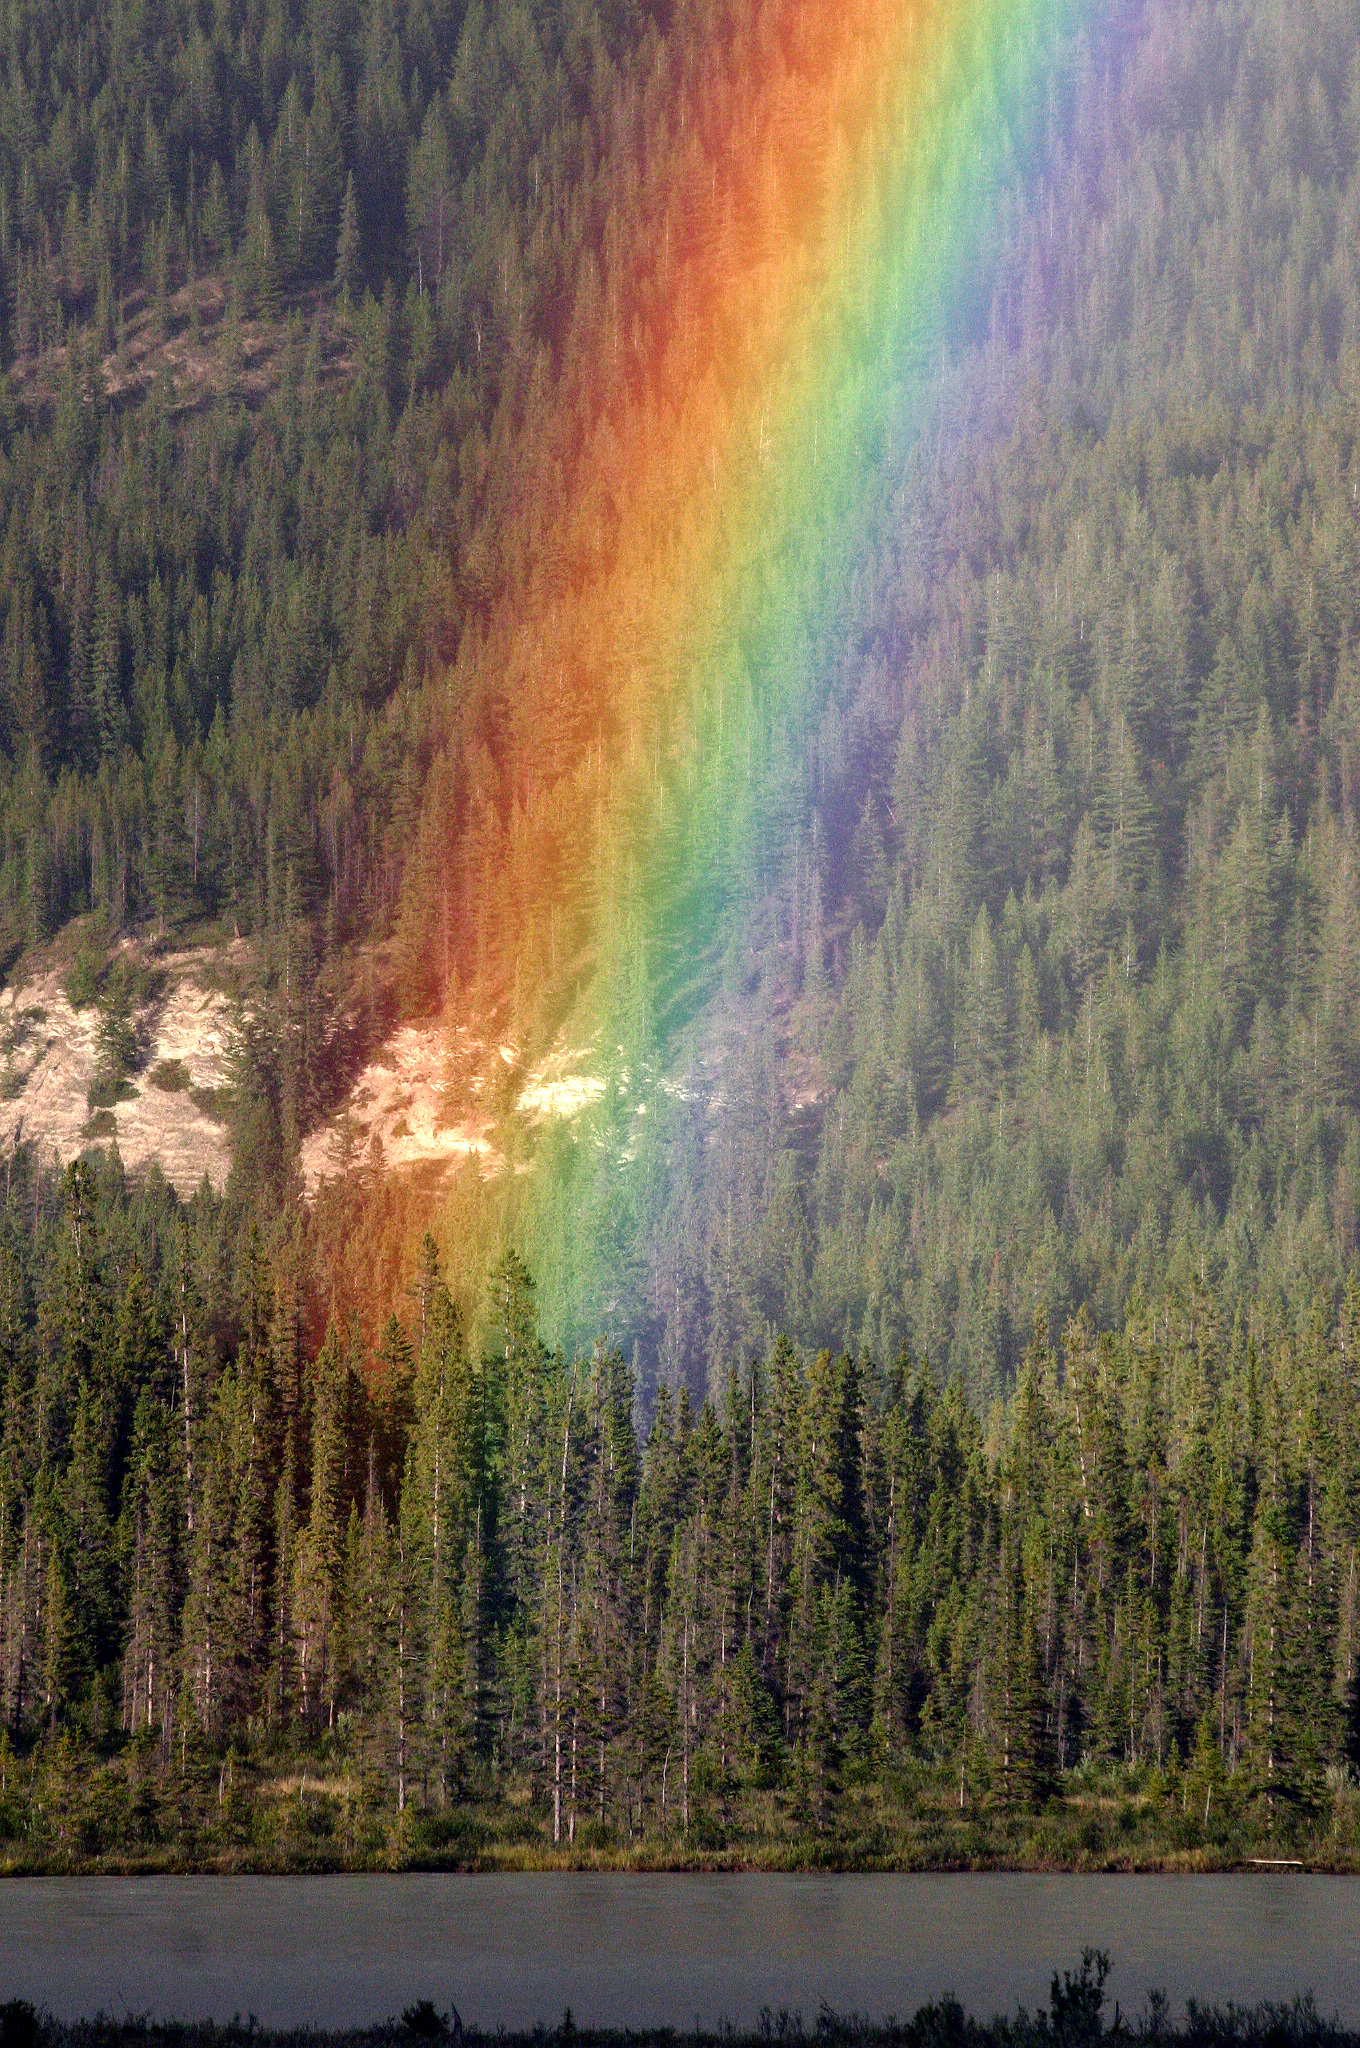 Rainbow   Wikipedia Image of the end of a rainbow at Jasper National Park